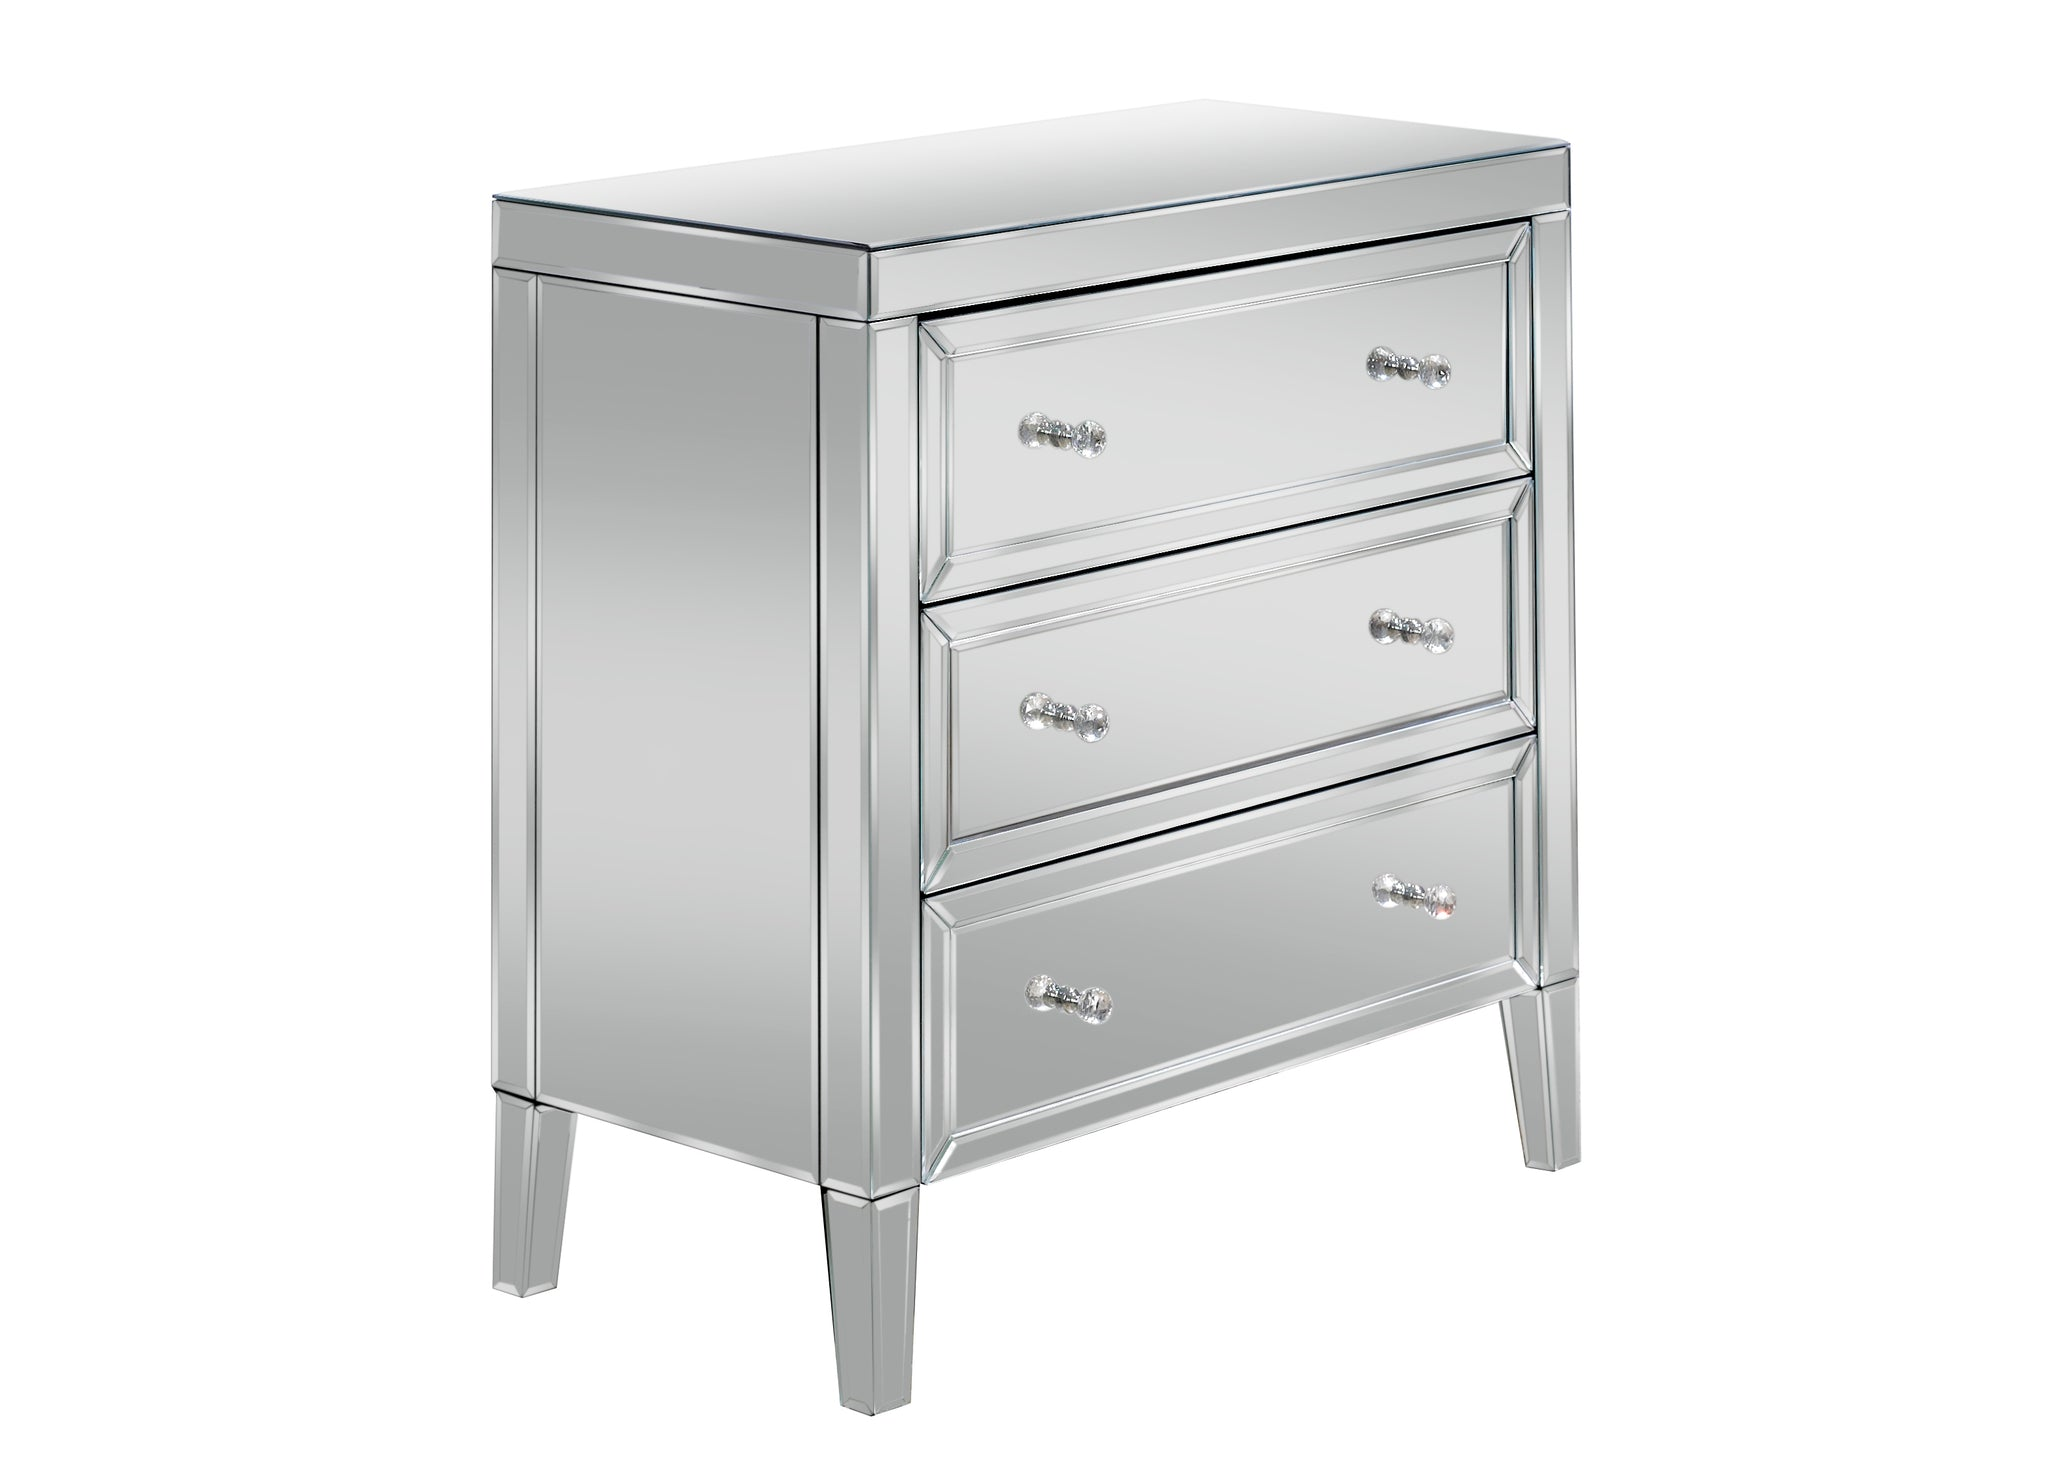 Turia 3 Drawer Chest - Ezzo